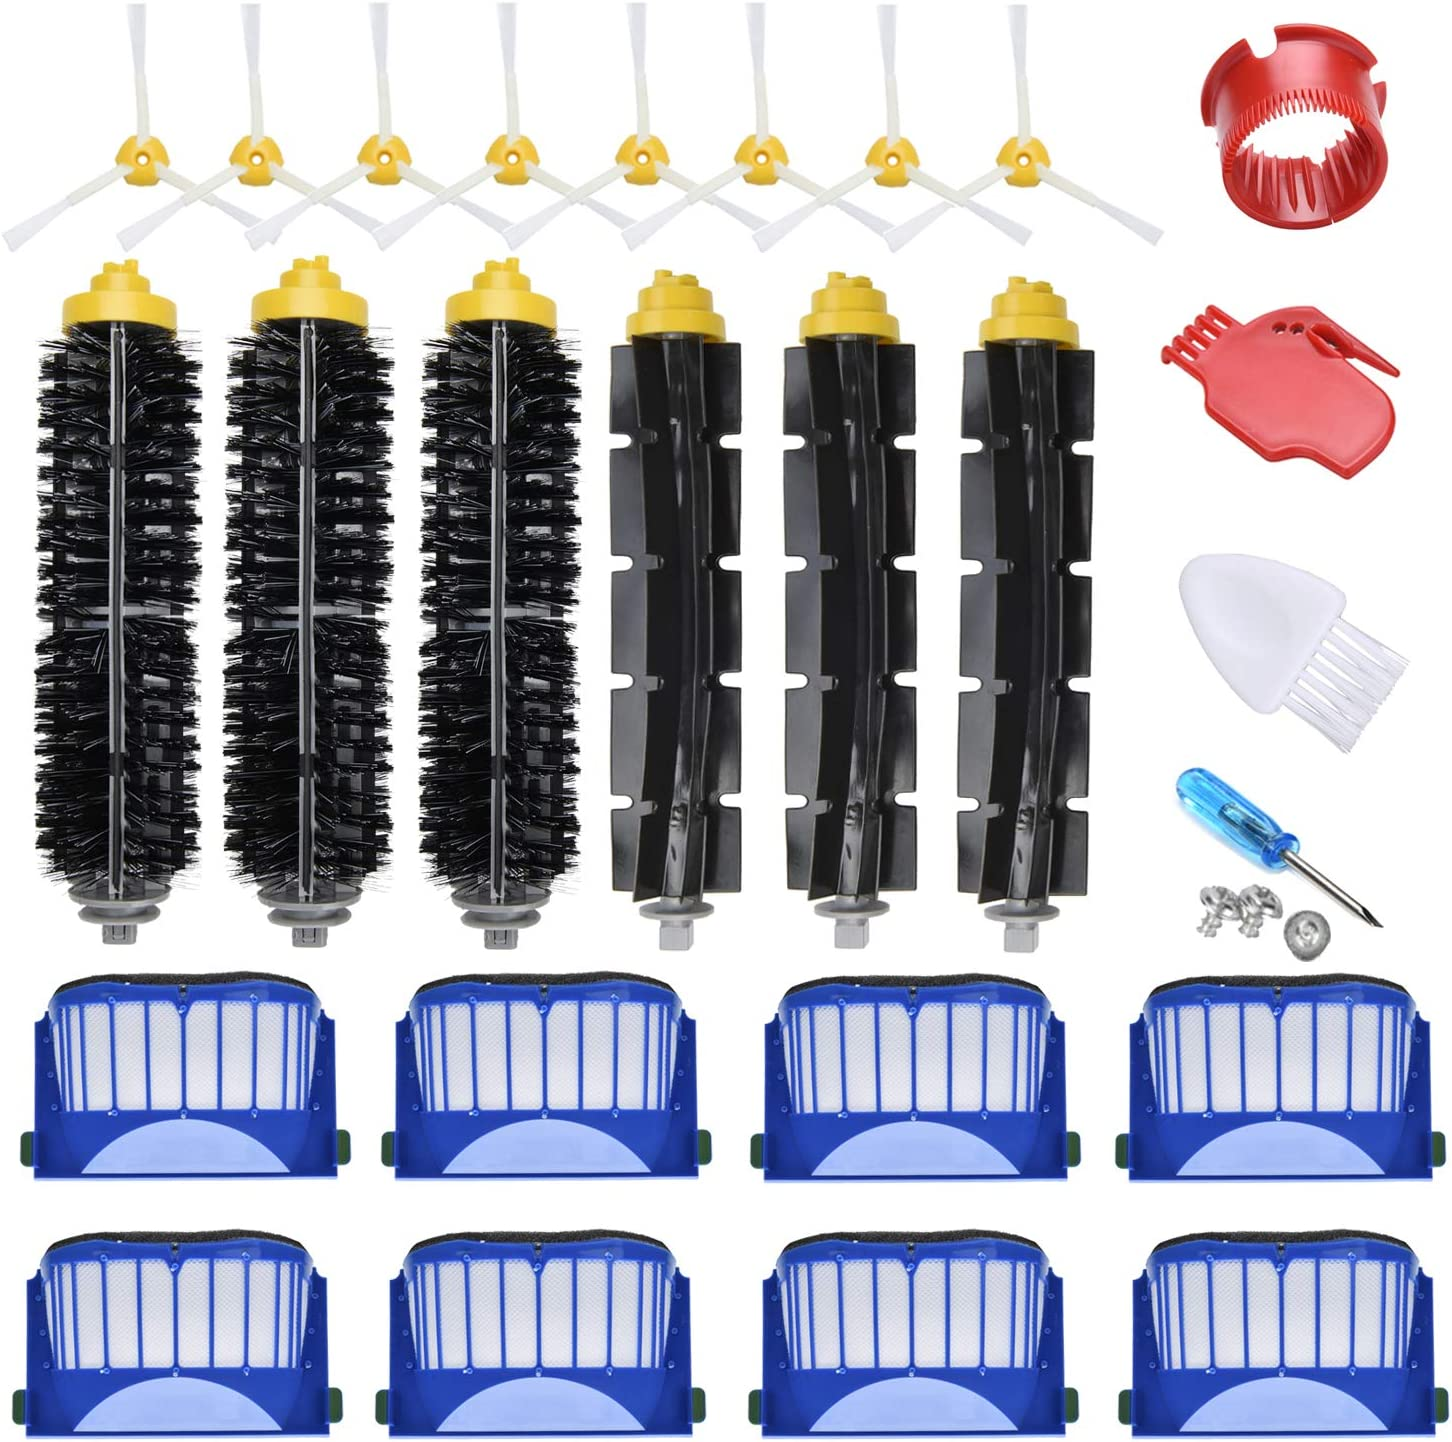 JoyBros 24-Pack Replacement Parts Compatible for iRobot Roomba Accessories 600 Series:690 670 671 680 650 614 595 585 Filter Side Roller Brush Vacuum Cleaner Replenishment Kit